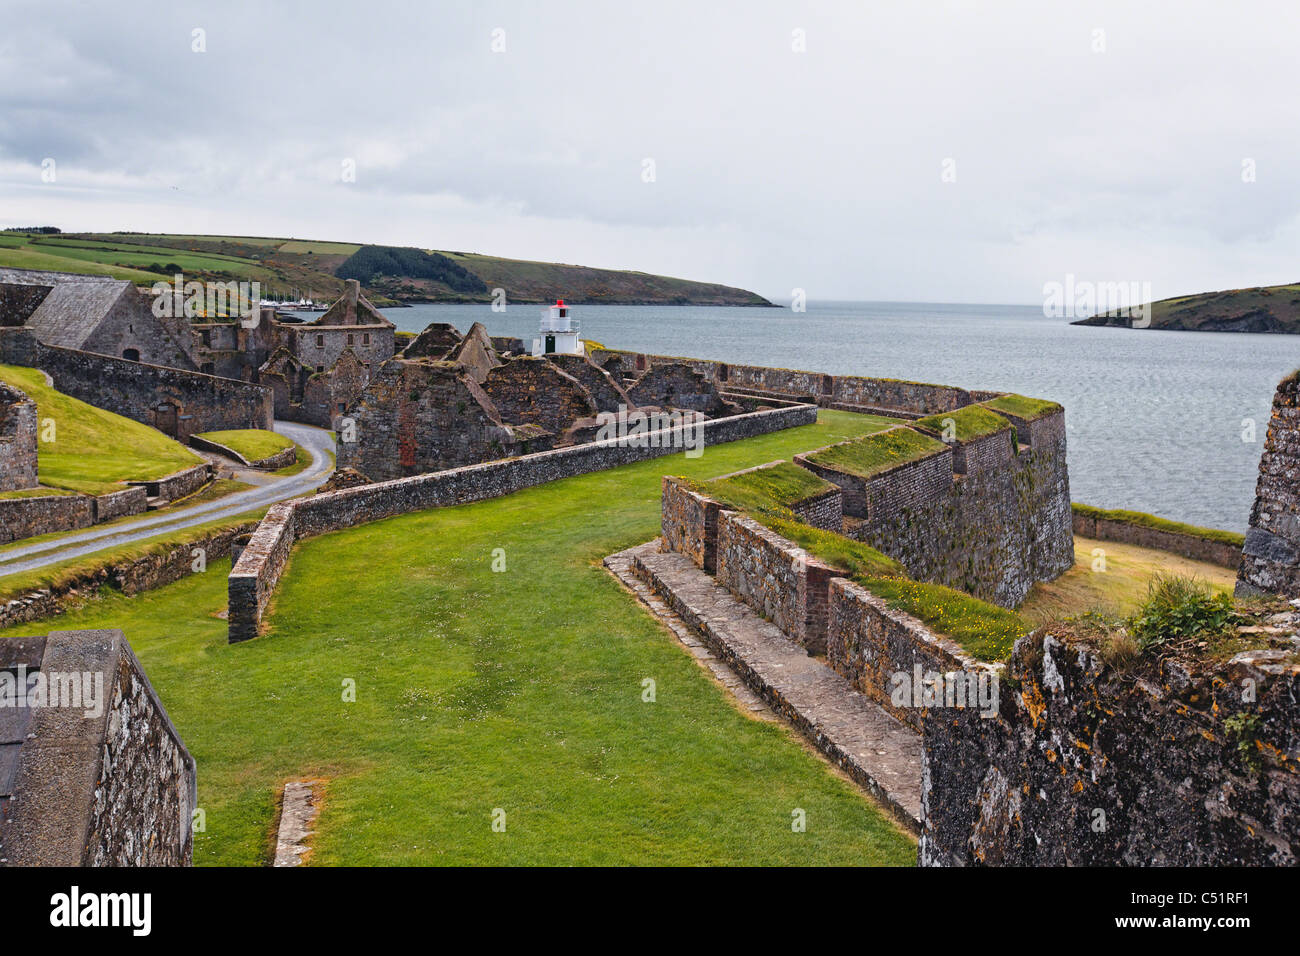 High Angle View of Fort Charles in Kinsale Harbor, County Cork, Ireland - Stock Image